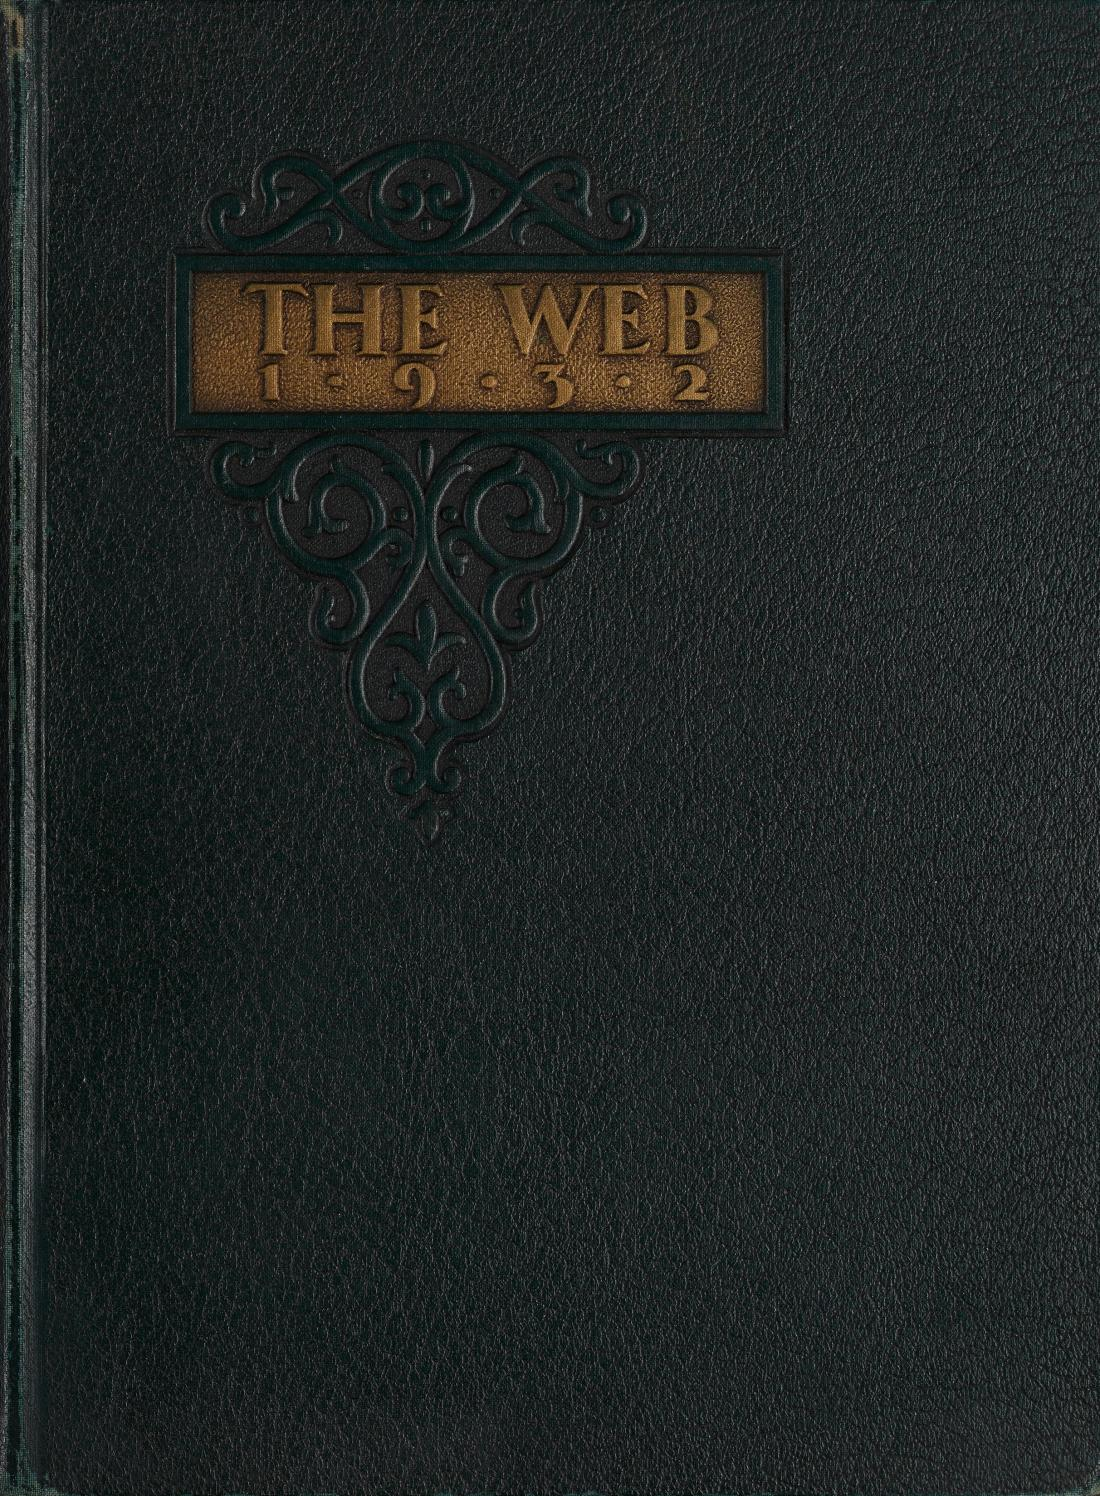 The Web - 1932 by UR Scholarship Repository - issuu